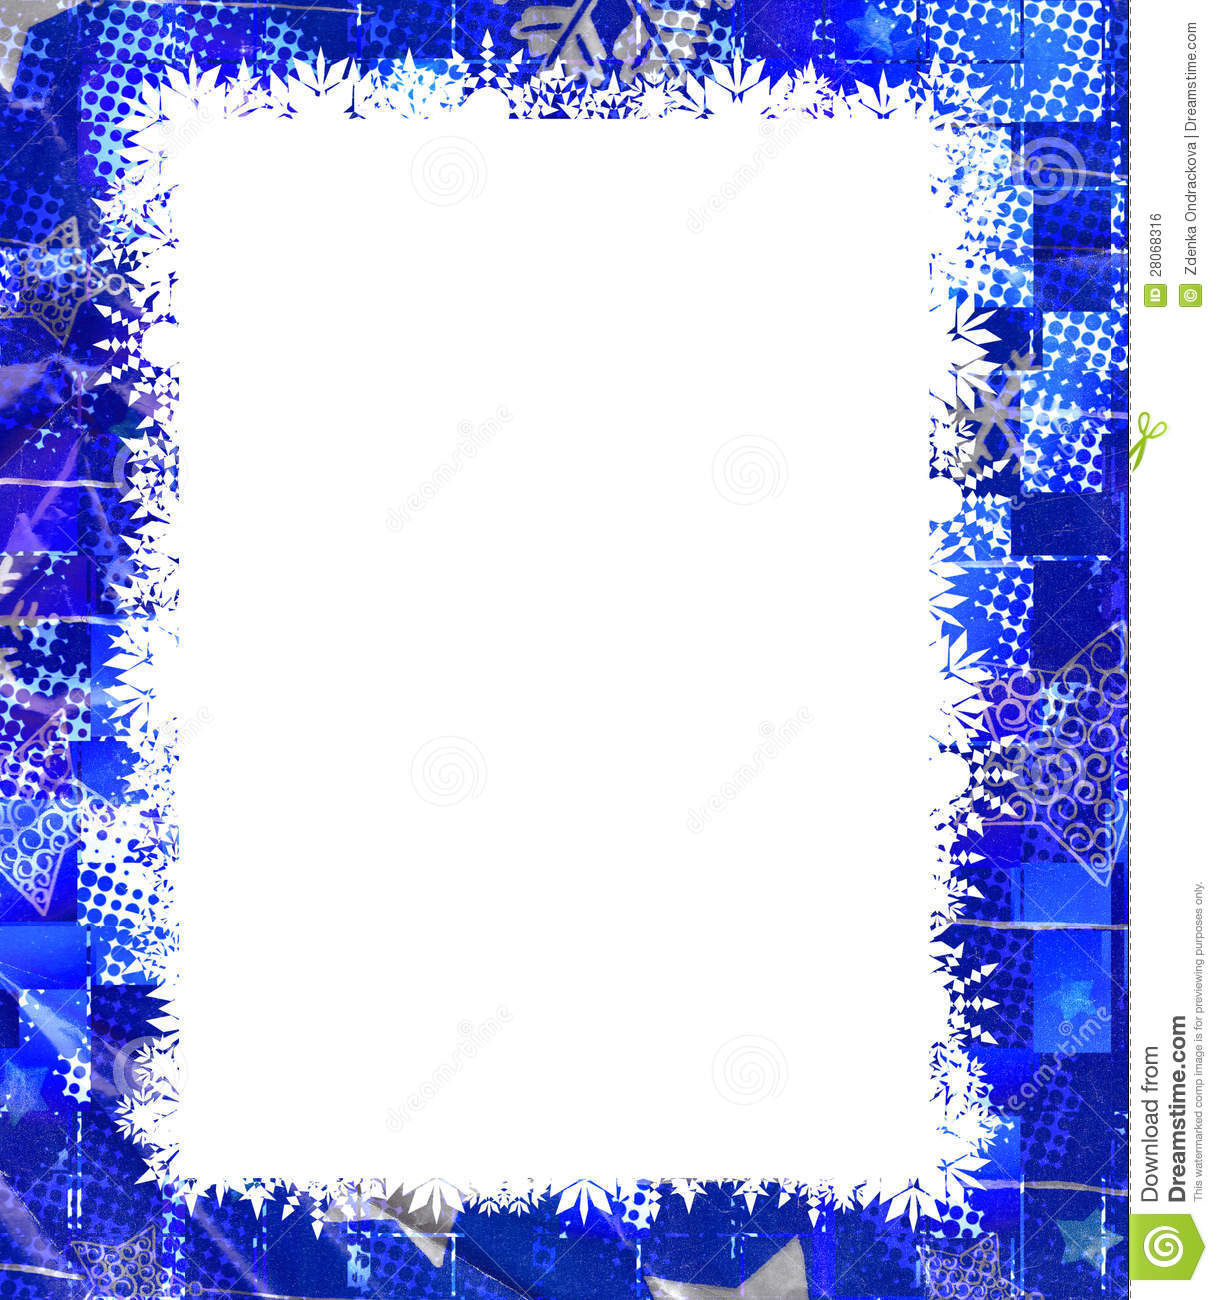 Winter Border Royalty Free Stock Image - Image: 28068316